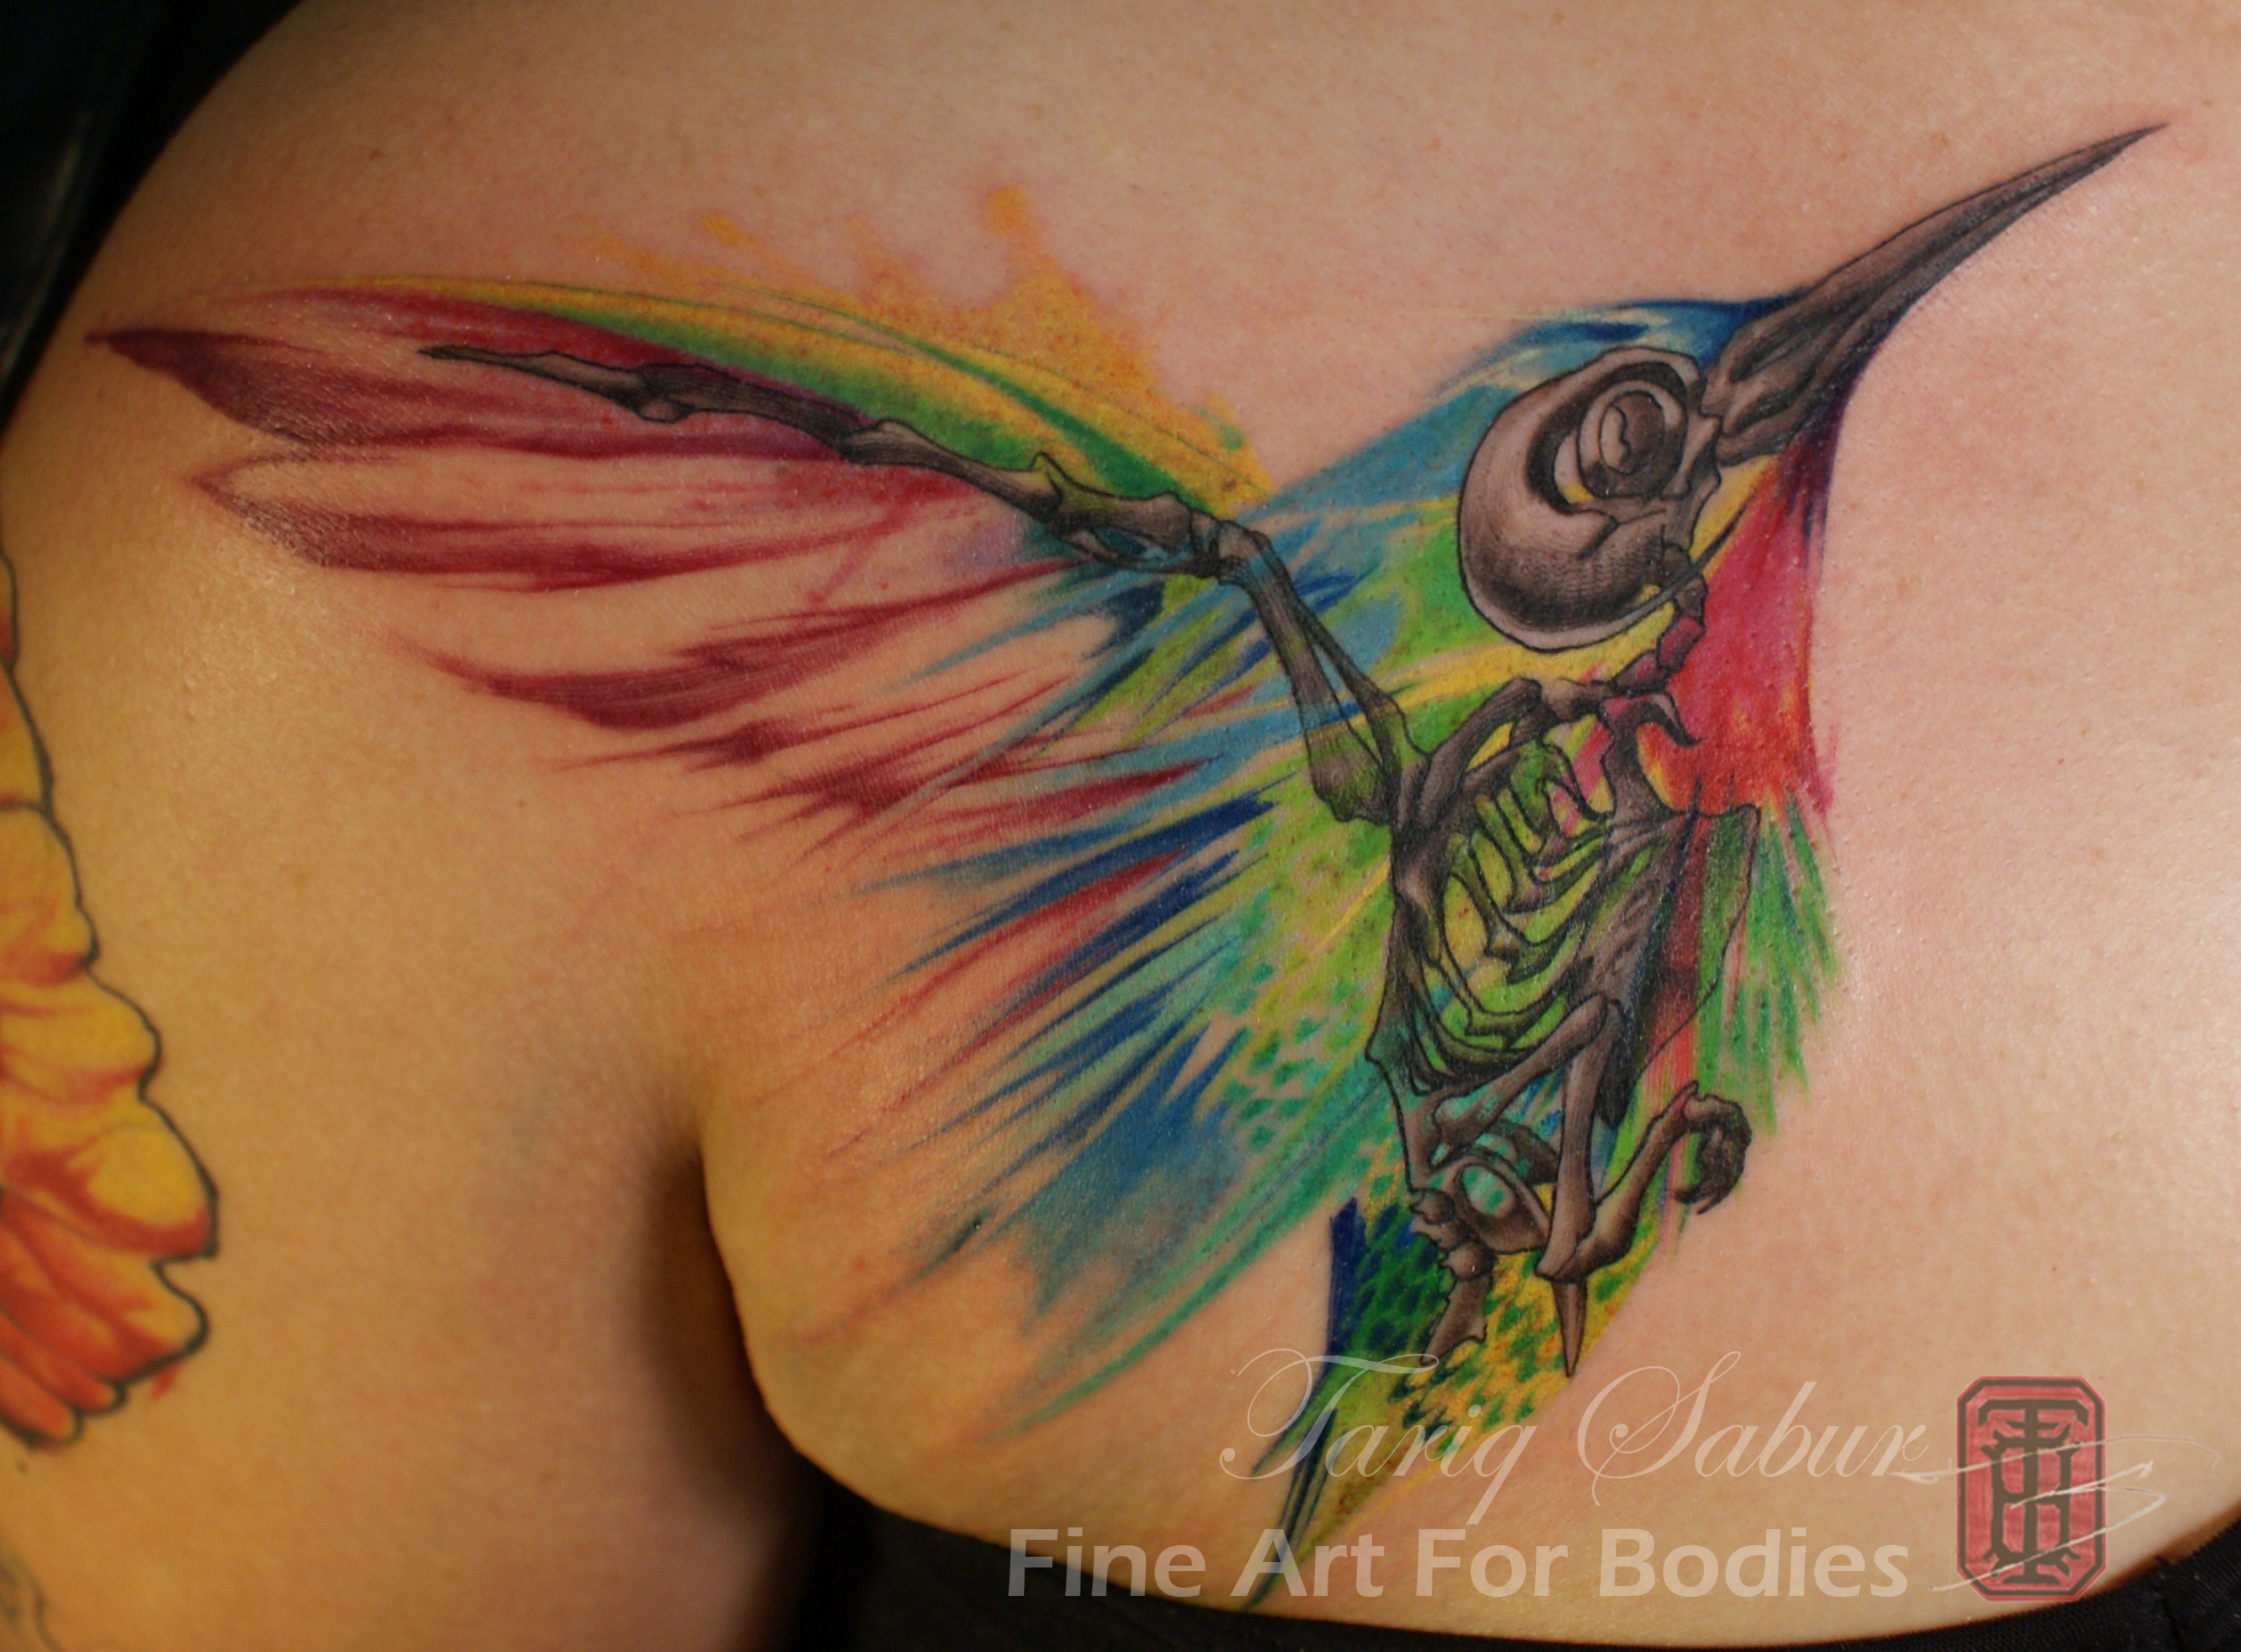 Fine Art Abstract And Watercolor Tattoos Fine Art For Bodies